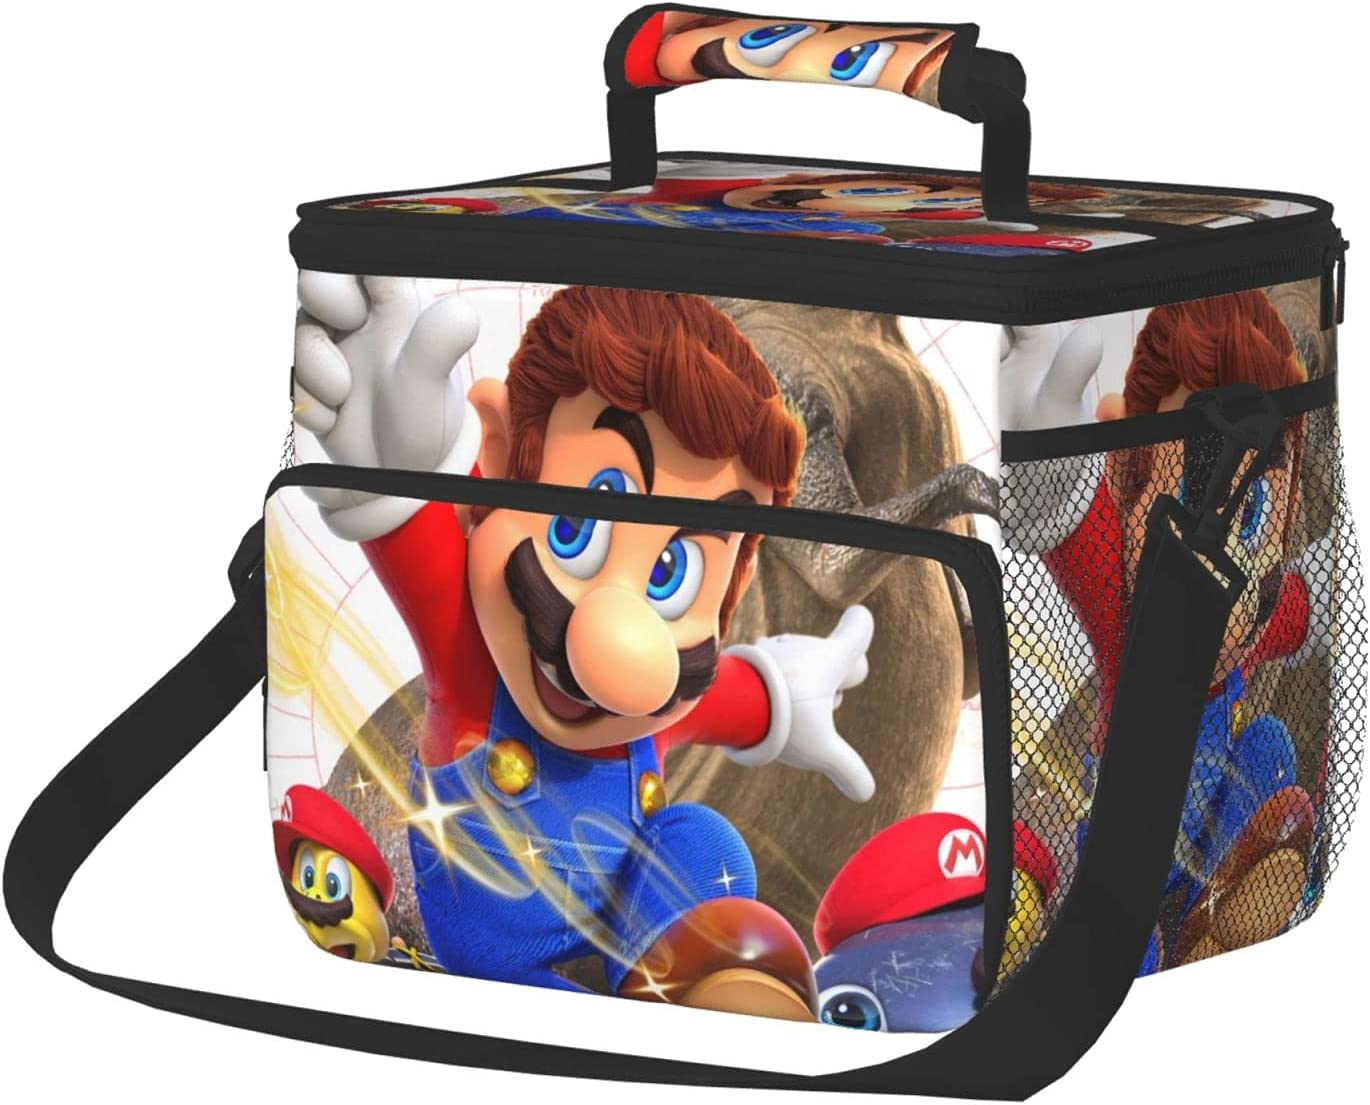 Max 67% OFF Ranking TOP17 Super Mario Odyssey Insulated Reusable Lun Adult Large Lunch Bag